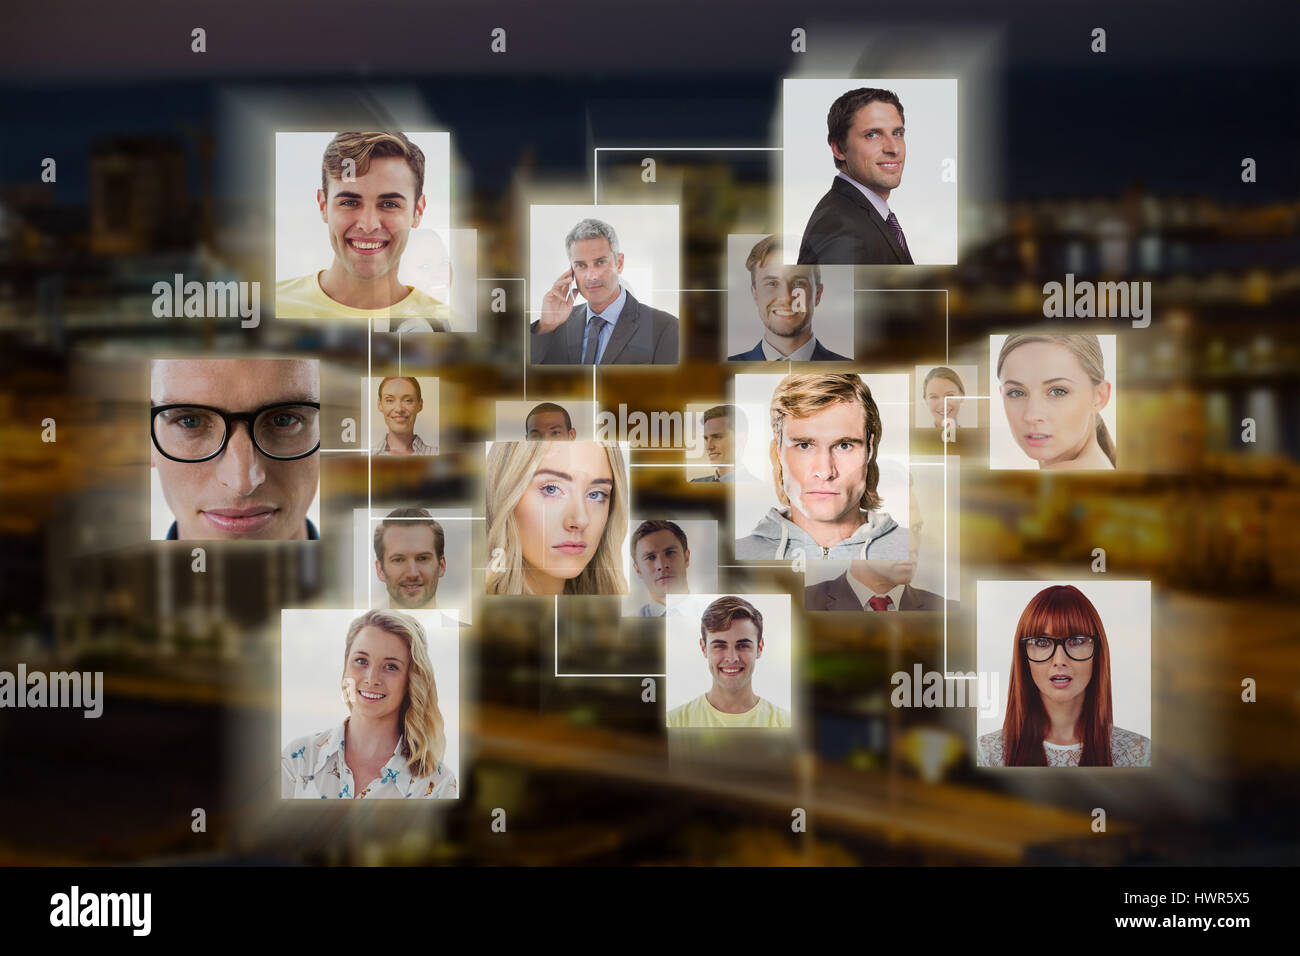 Composite image of headshots against illuminated buildings in city - Stock Image